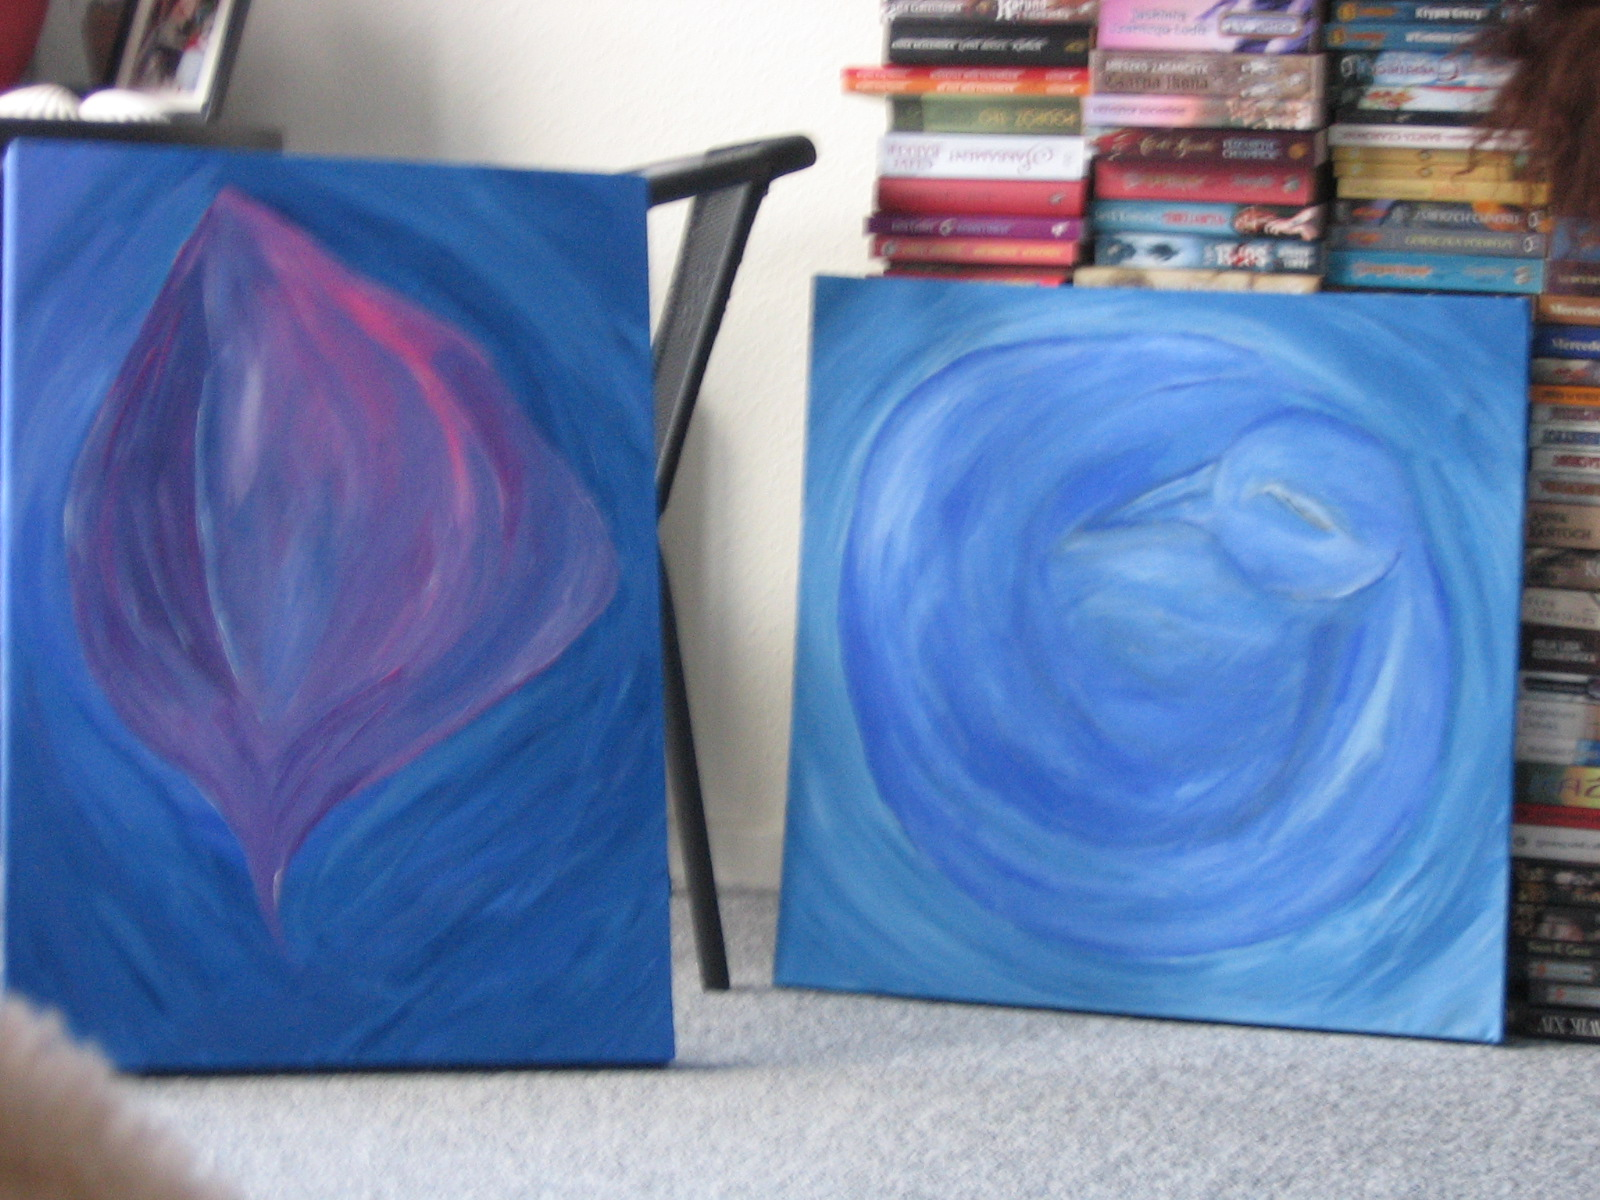 My two paintings